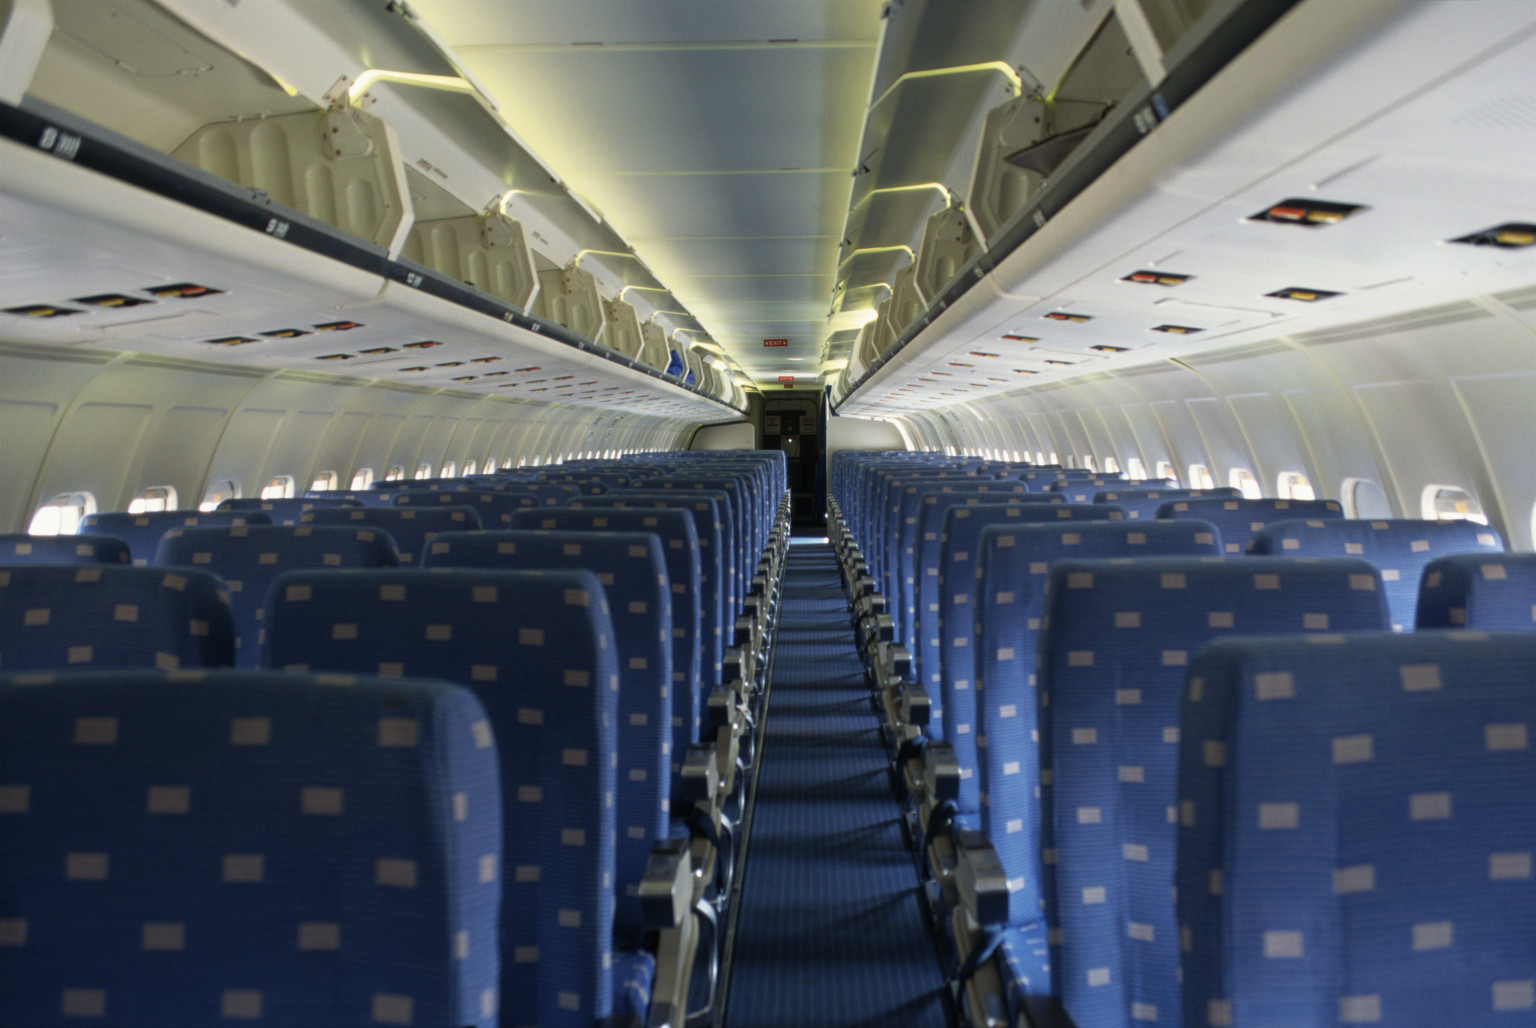 A Muslim Woman Was Kicked Off A Plane Because The Flight ...